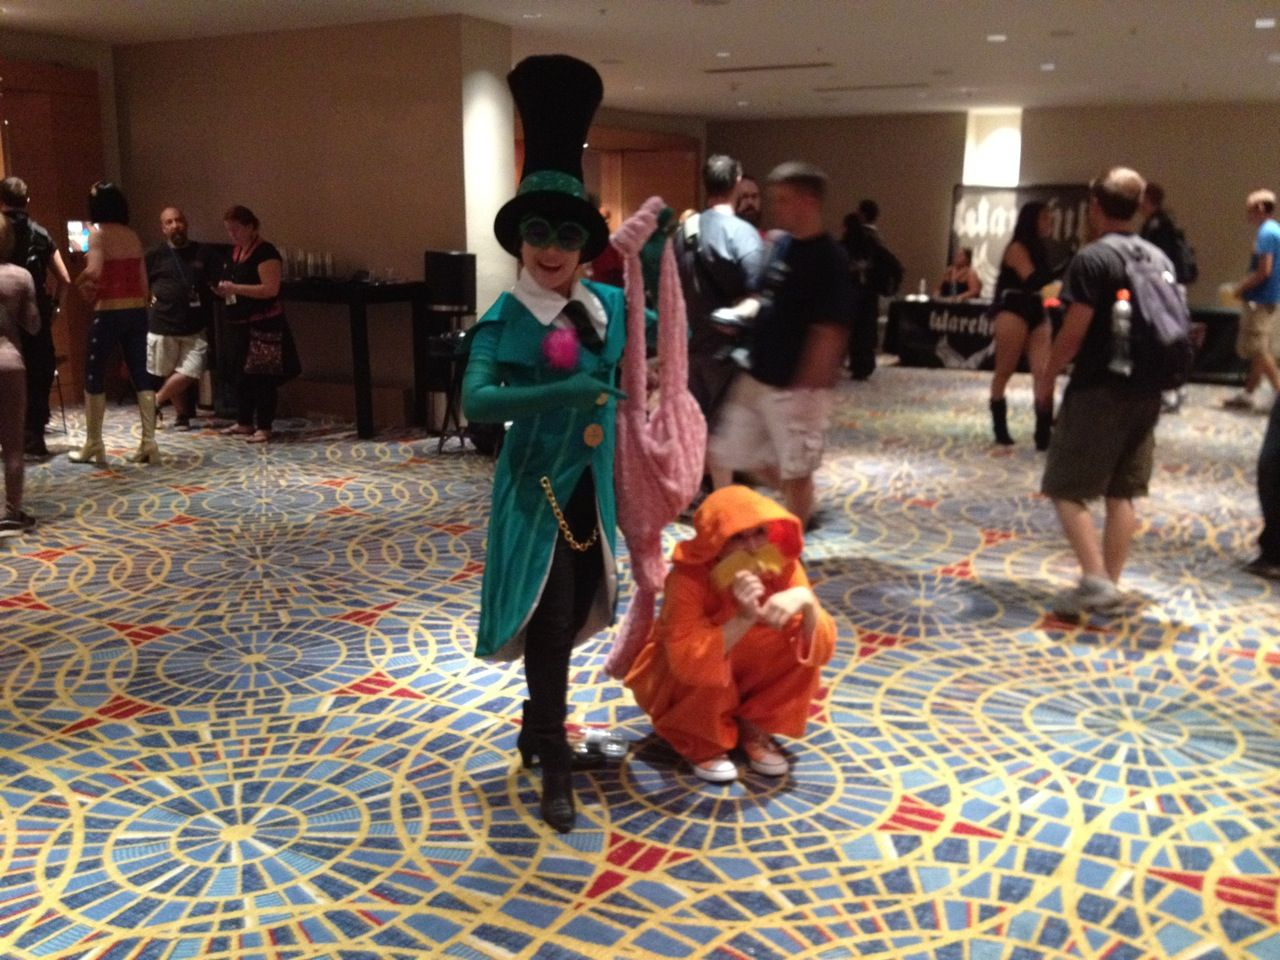 Lorax and friend cosplay